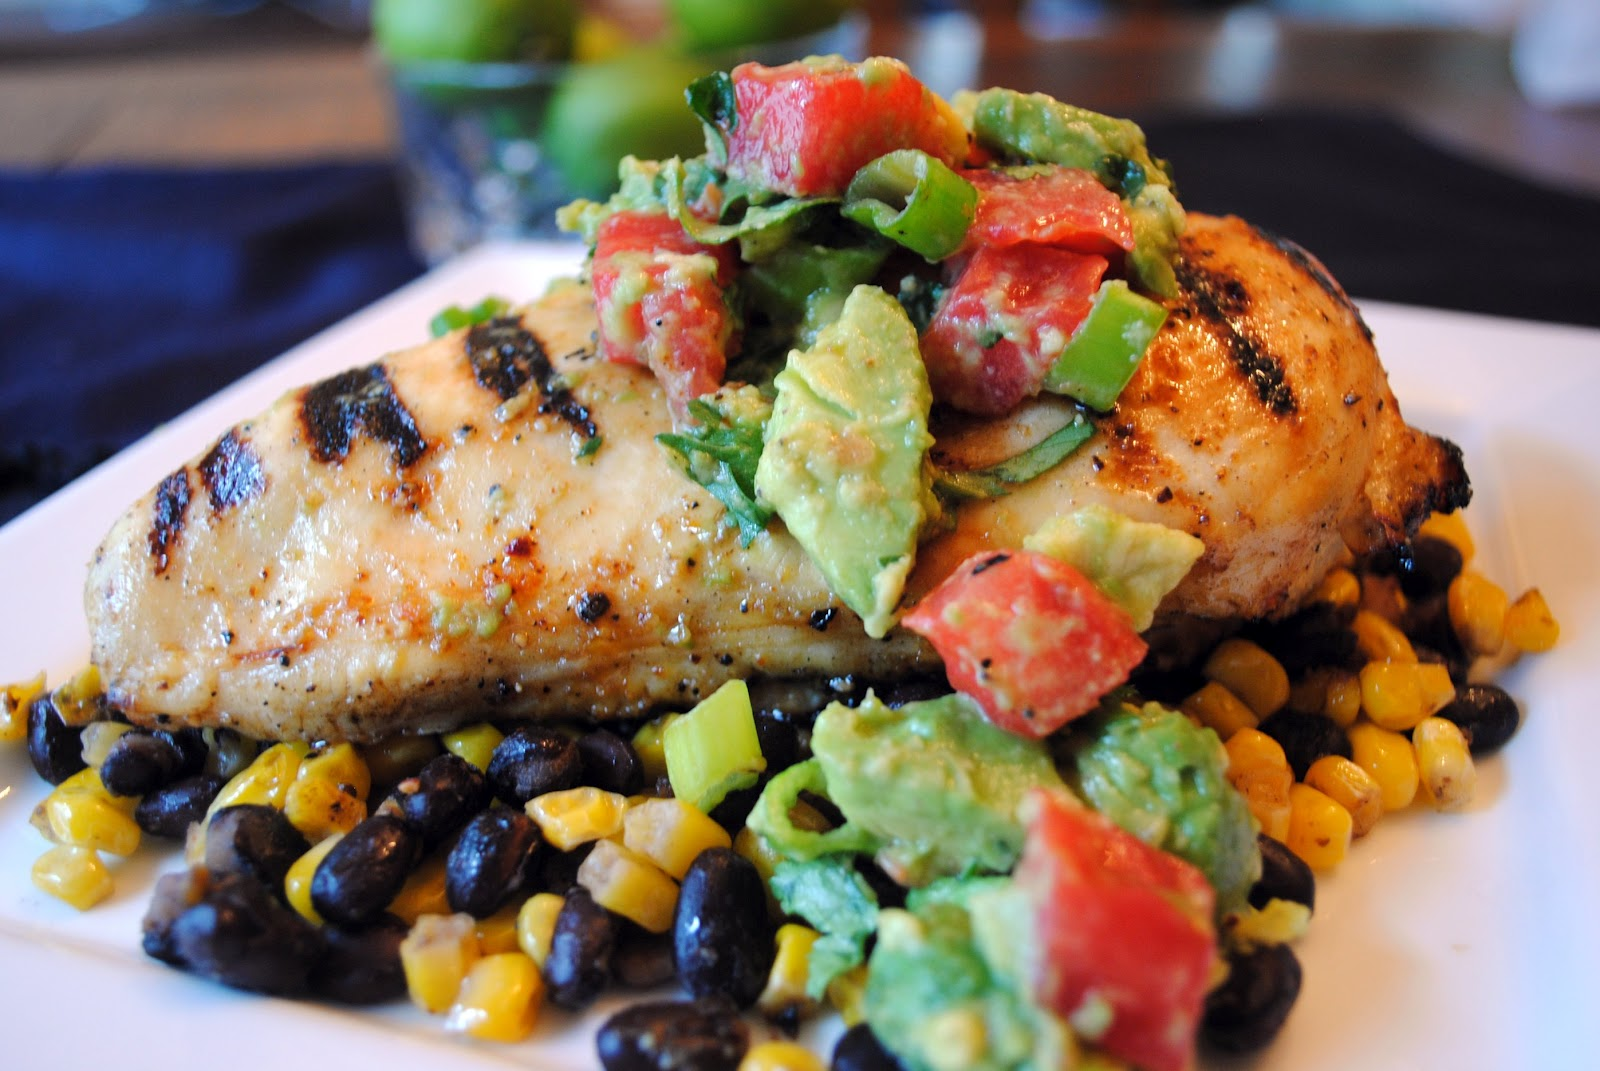 ... 128 Hours Together: Cilantro Lime Chicken with Corn and Black Beans